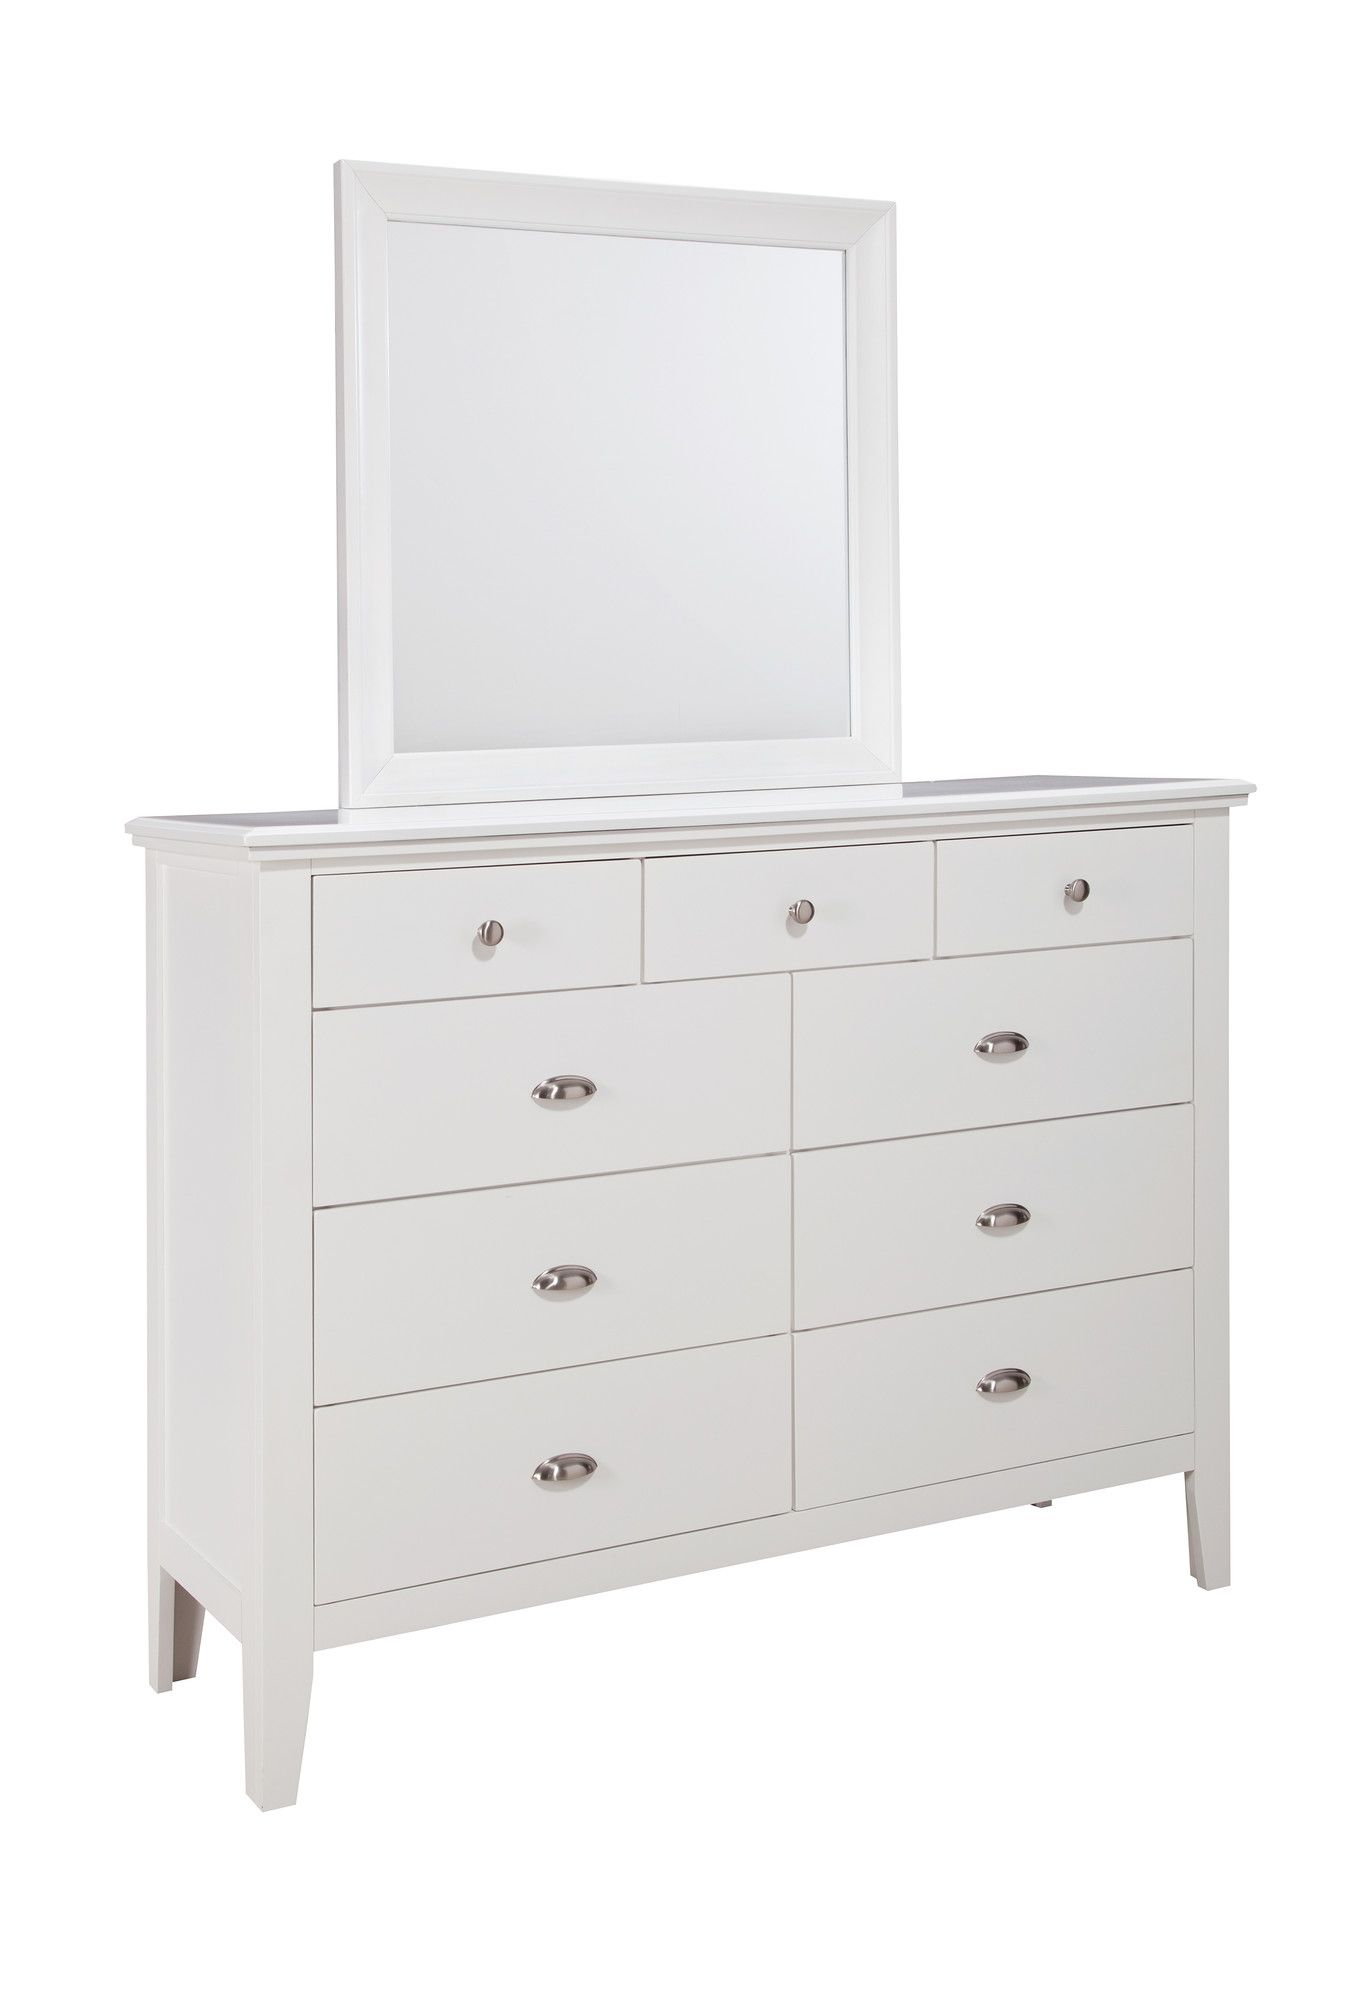 Bellamy dresser products pinterest dresser and products